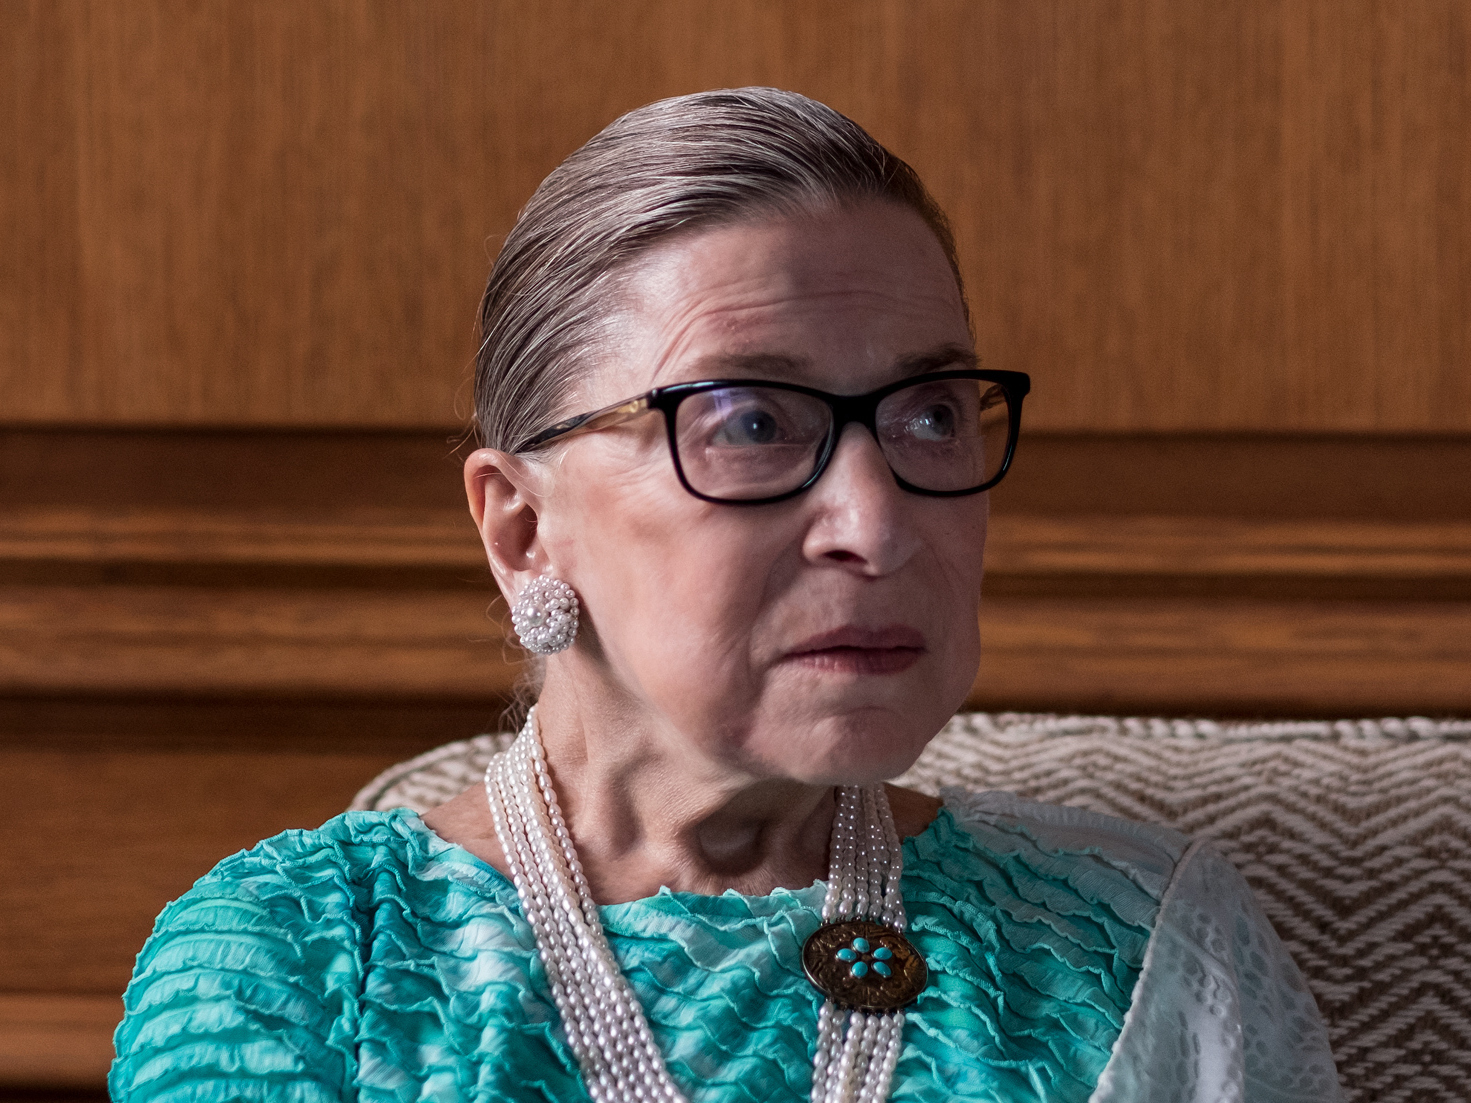 Supreme Court Justice Ruth Bader Ginsburg — here in her chambers during a 2016 interview with NPR's Nina Totenberg — died on Friday at the age of 87.